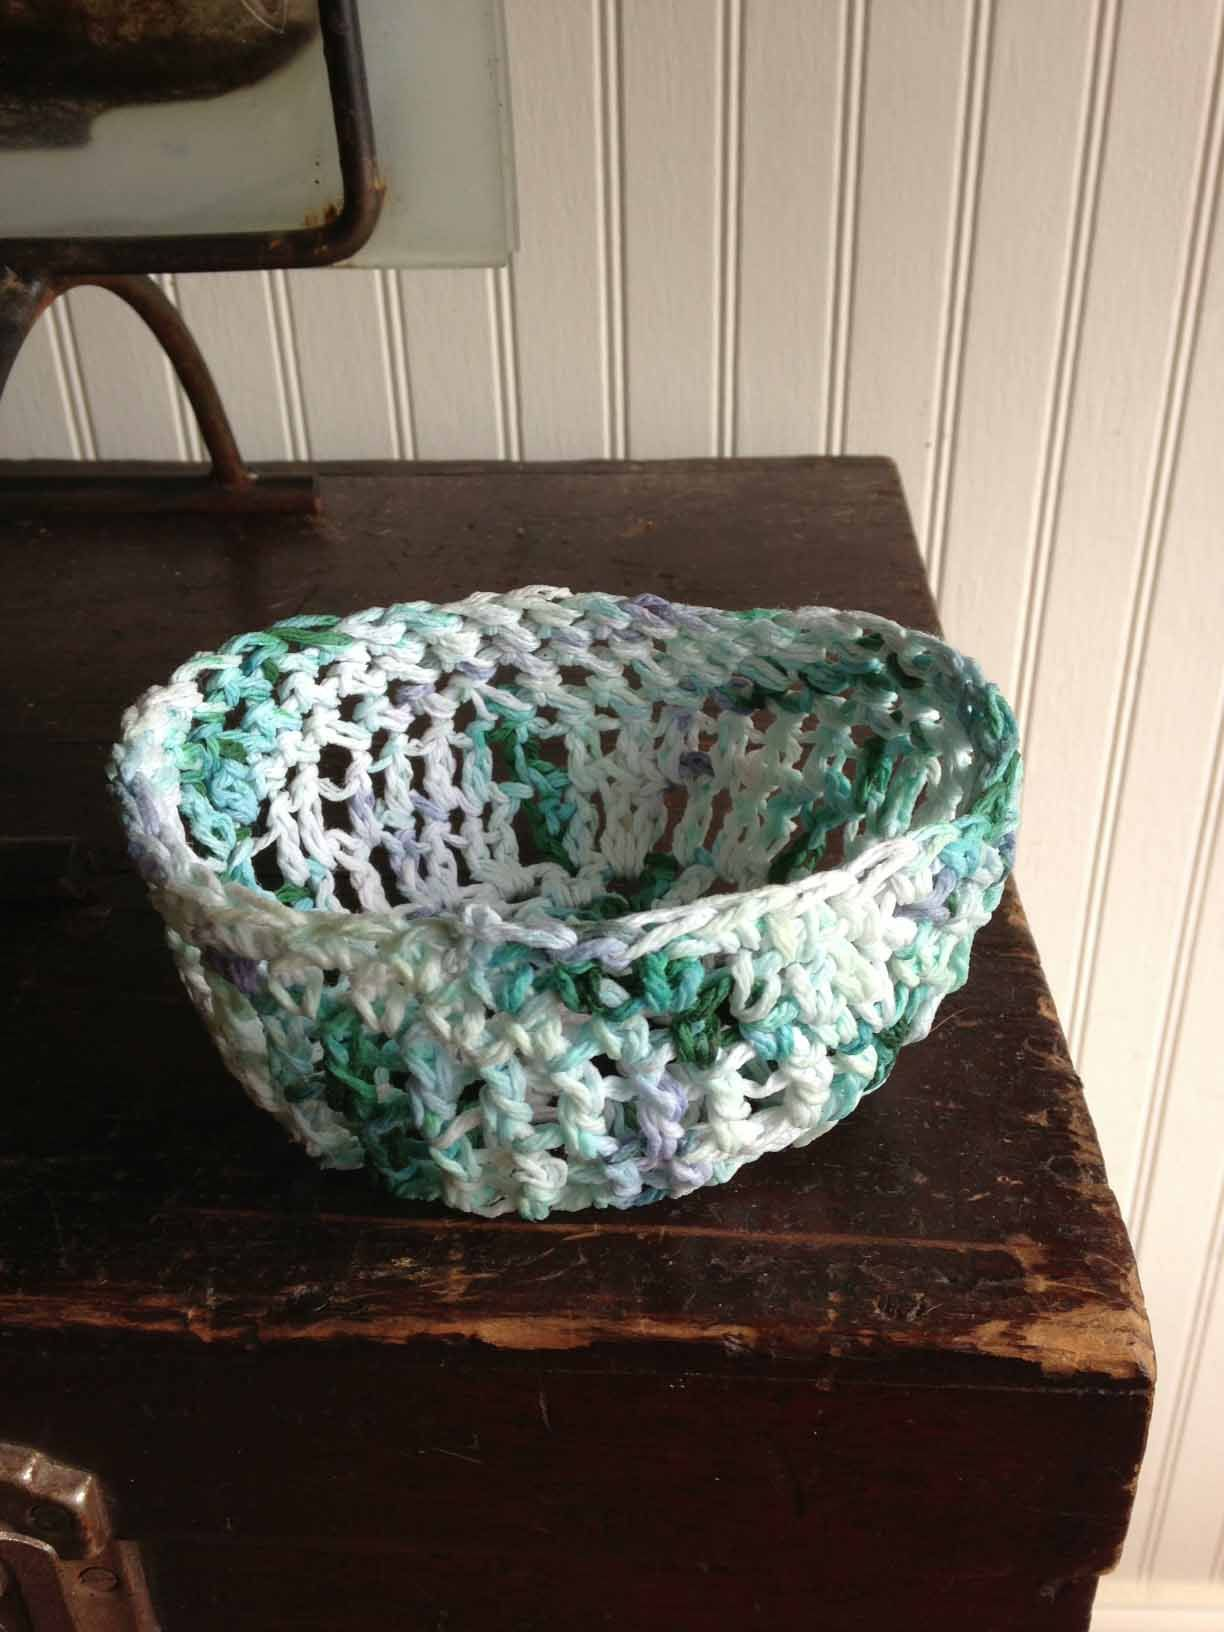 Crocheting Too Loose : Pin by Deborah Smith on Knit, spin, crochet Pinterest